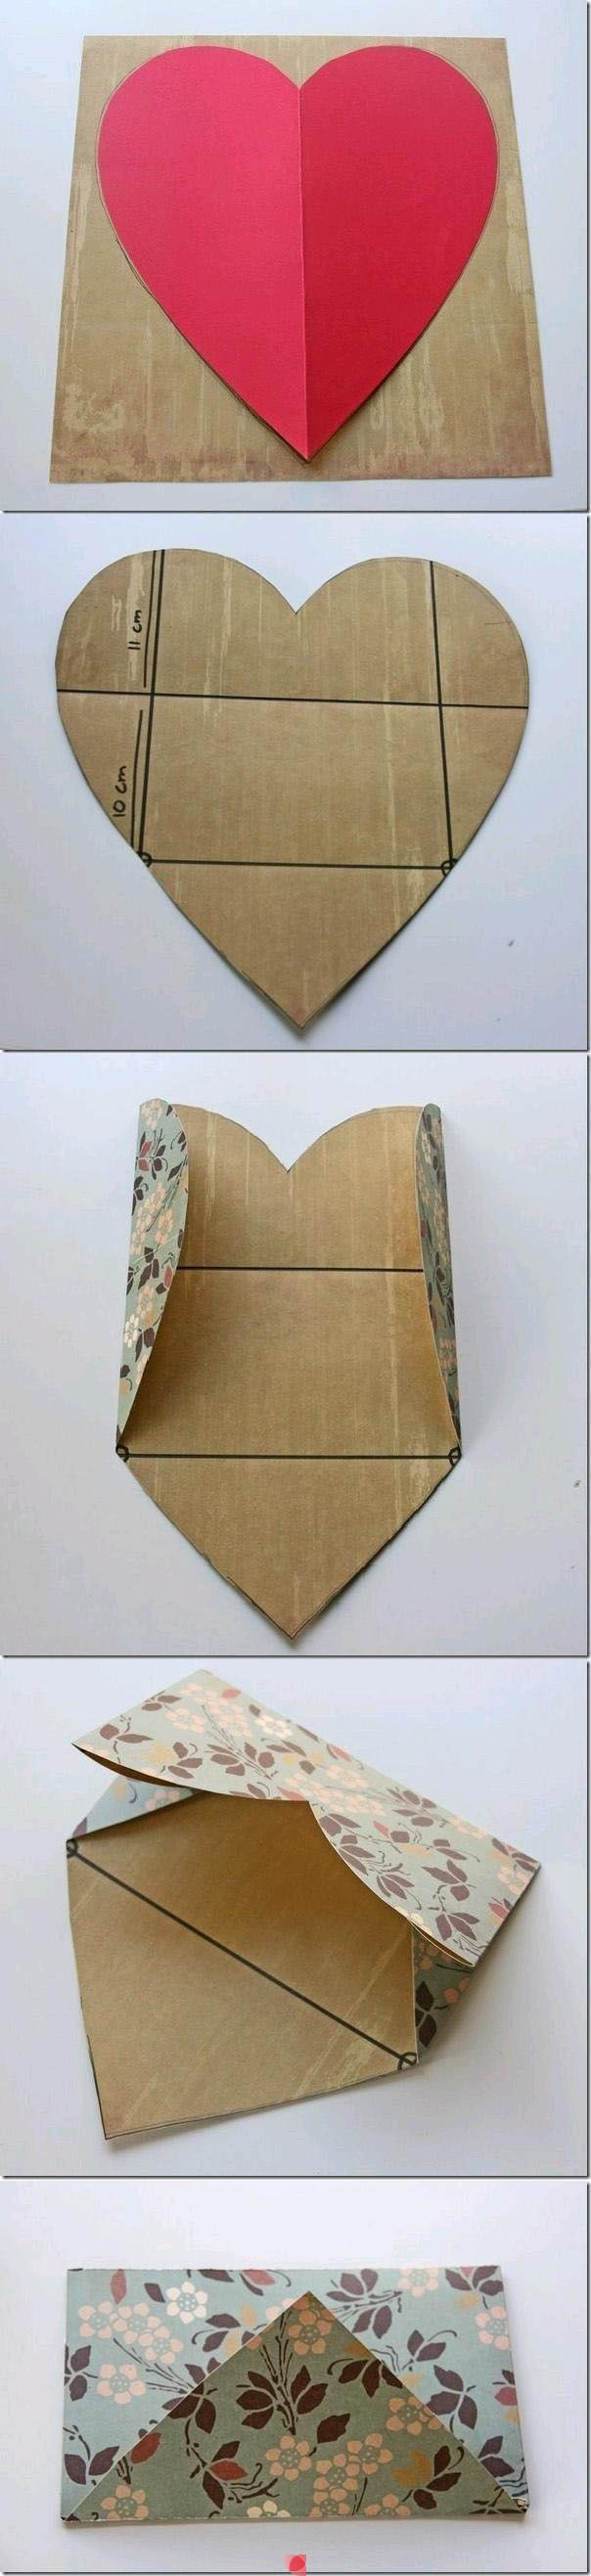 a heart that transformed into an envelope